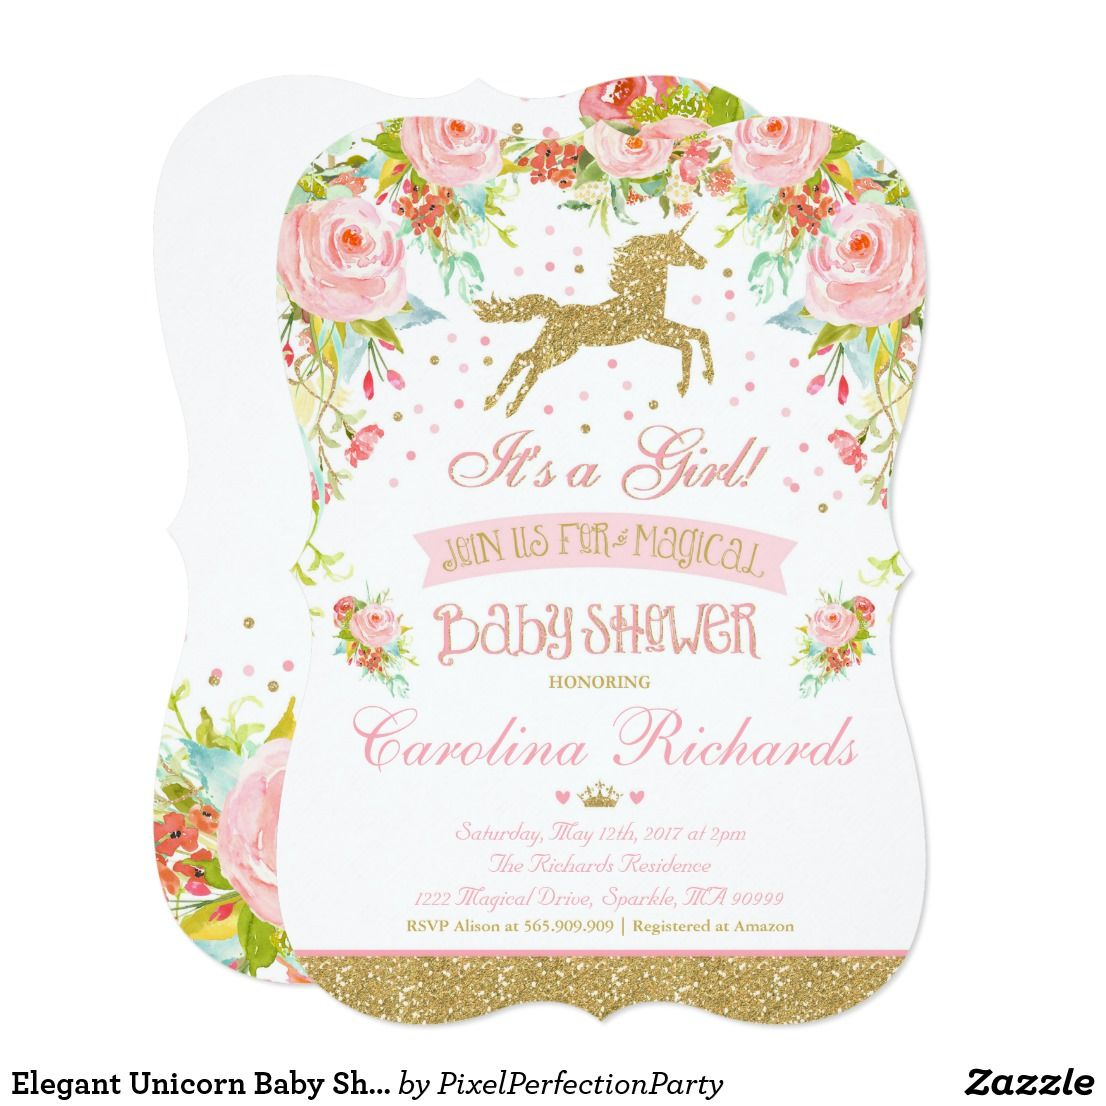 Elegant Unicorn Baby Shower Invitation | Unicorn baby shower ...